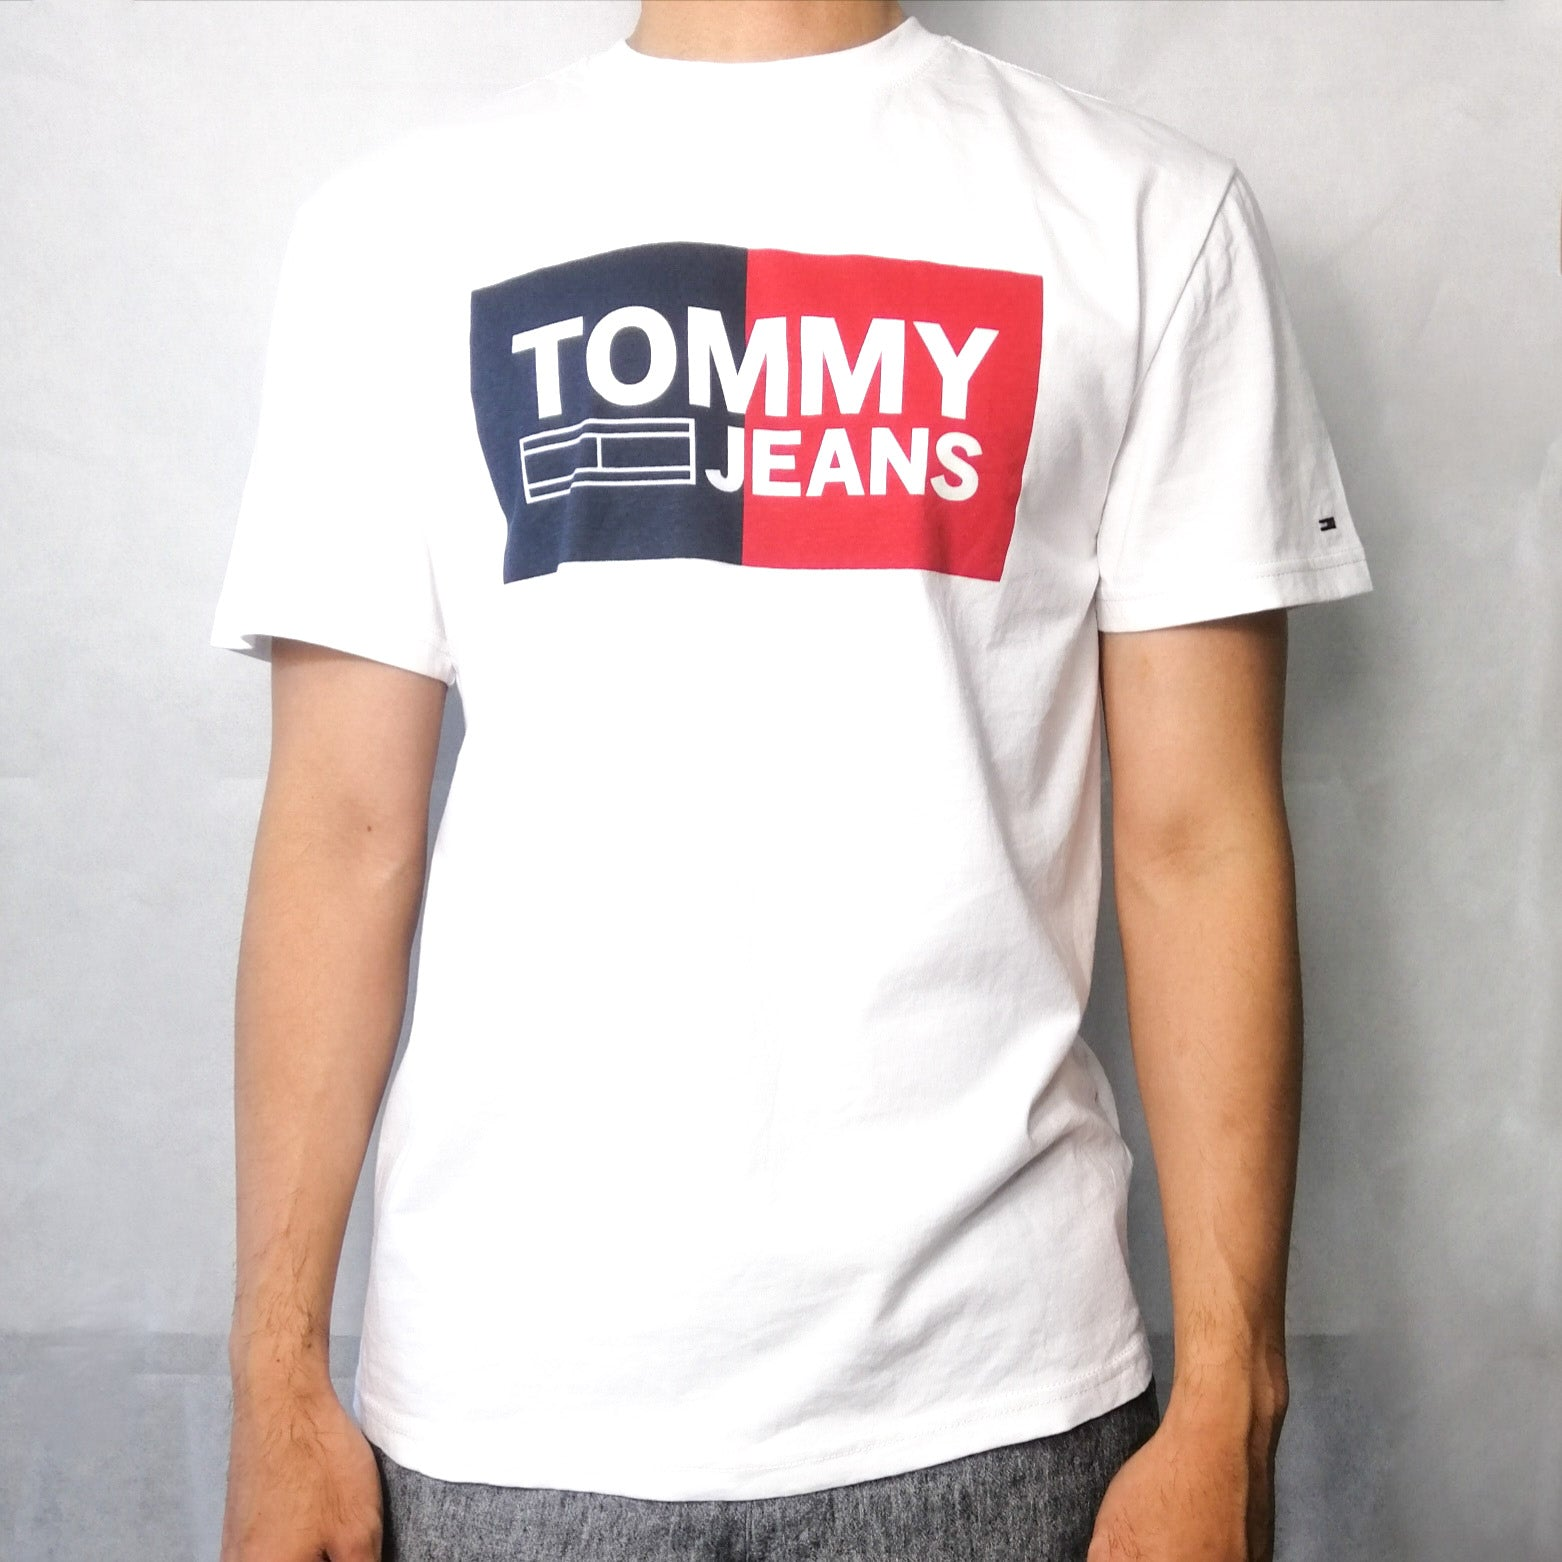 8d65d1163 Tommy Hilfiger Jeans Essential T Shirt Heather - Style Up